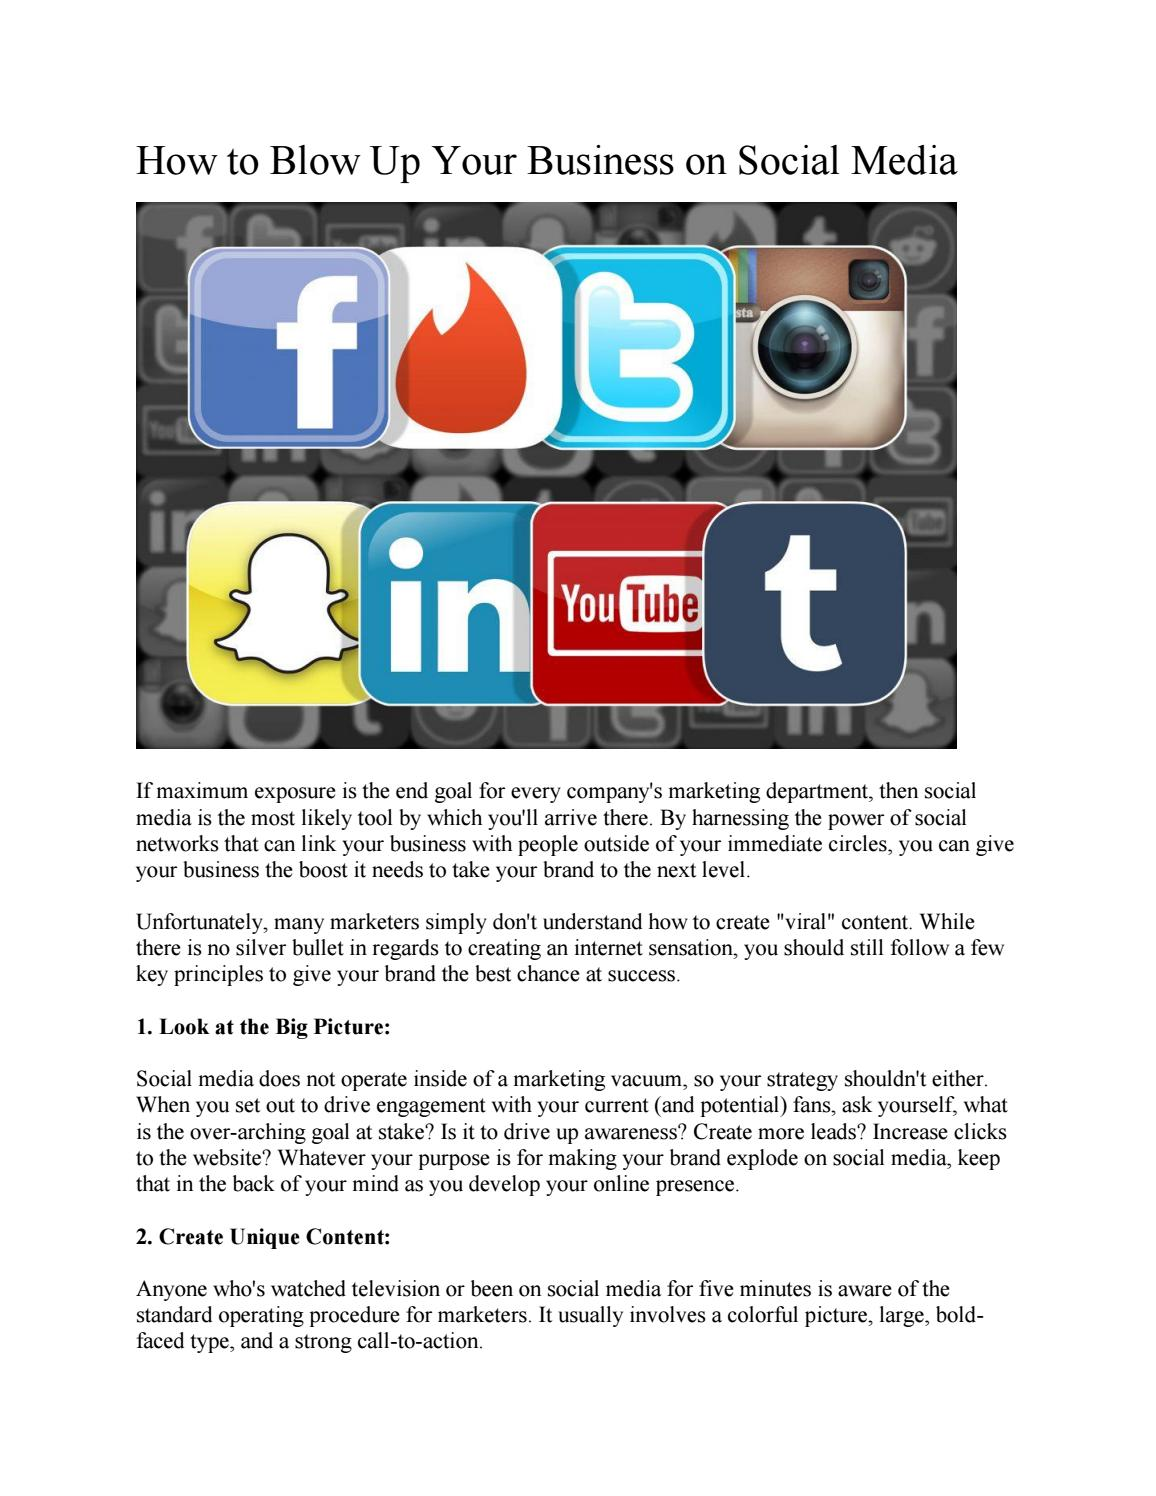 How to Blow Up Your Business on Social Media by Phil Shawe